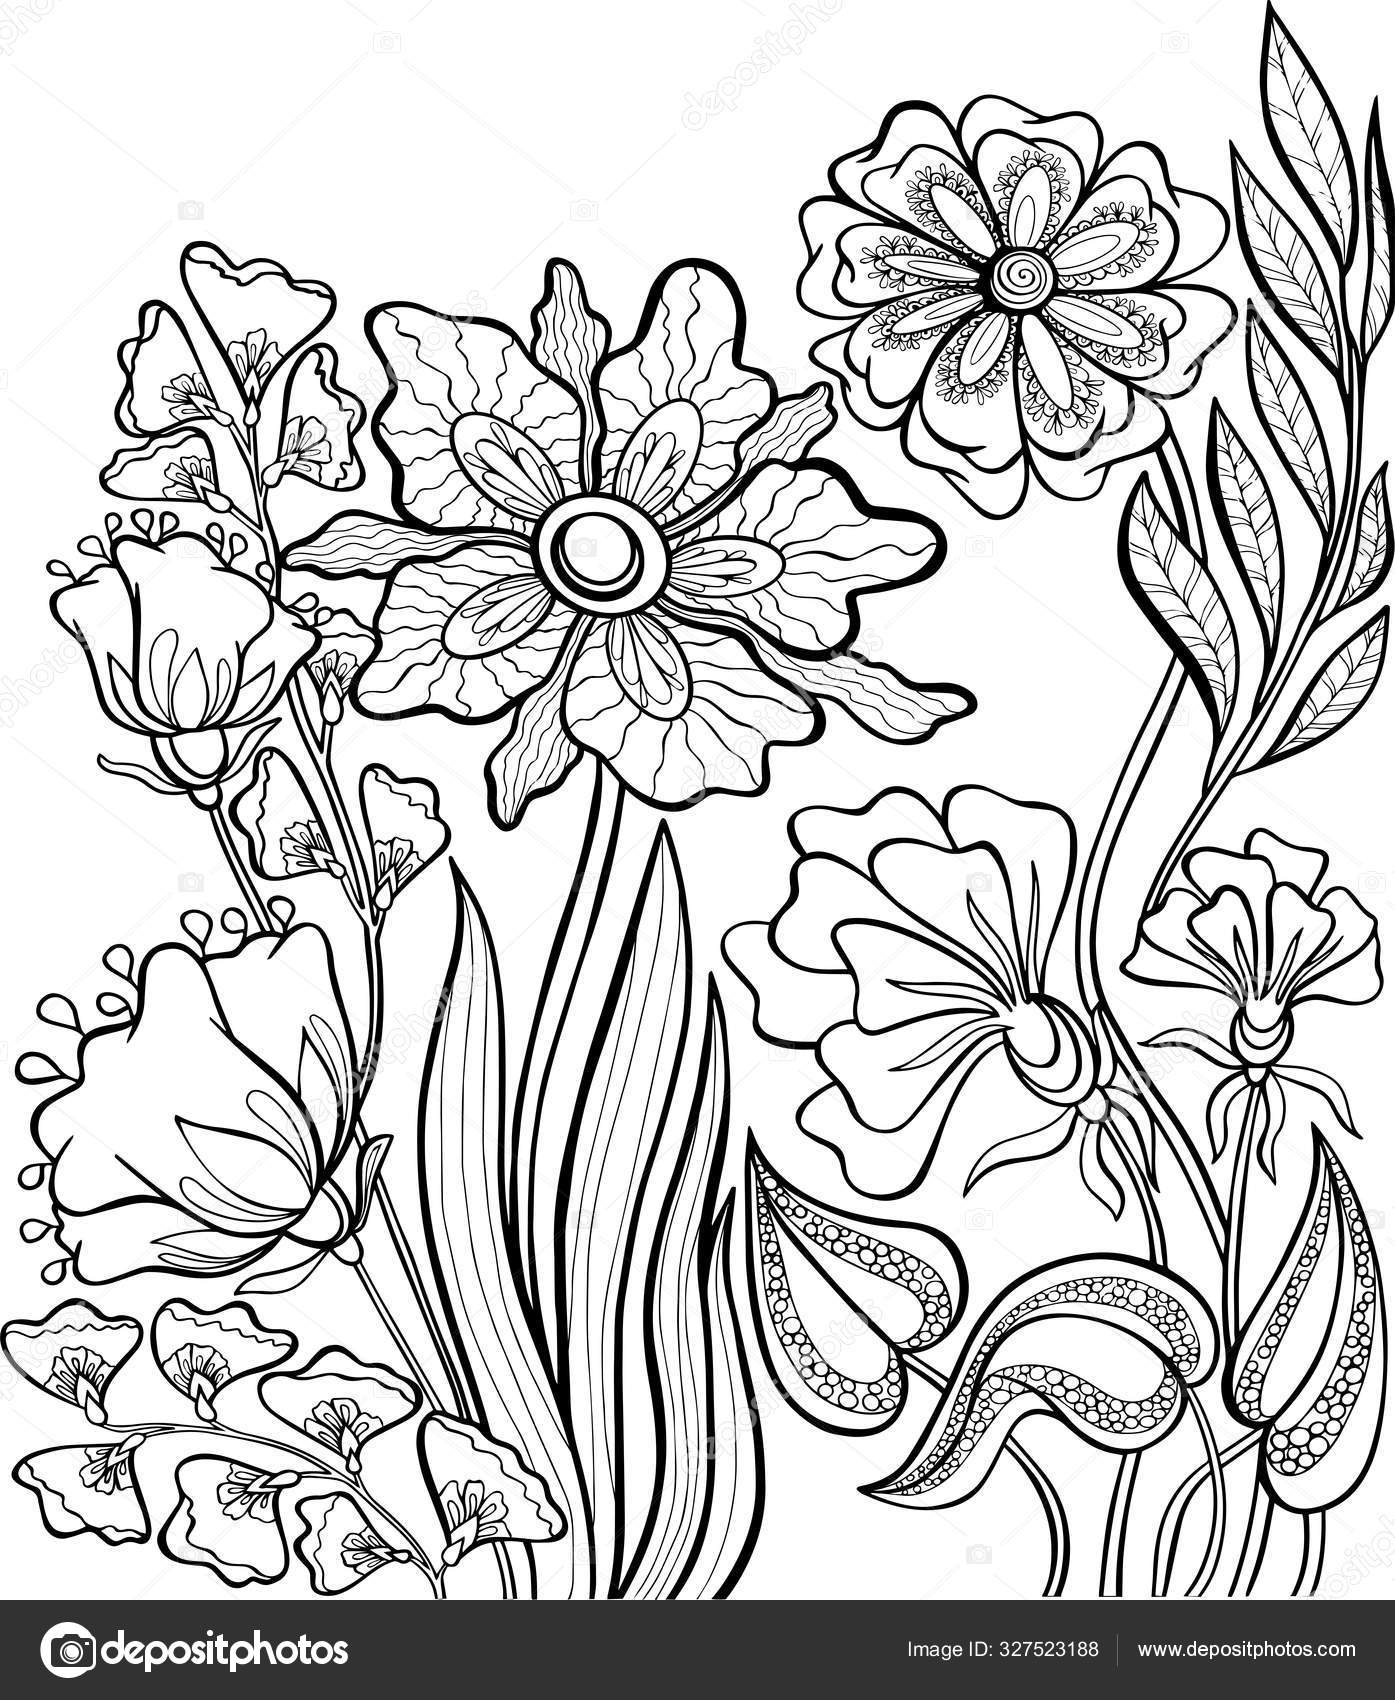 - Book Coloring Book Flowers Vector Antistress Page Outline